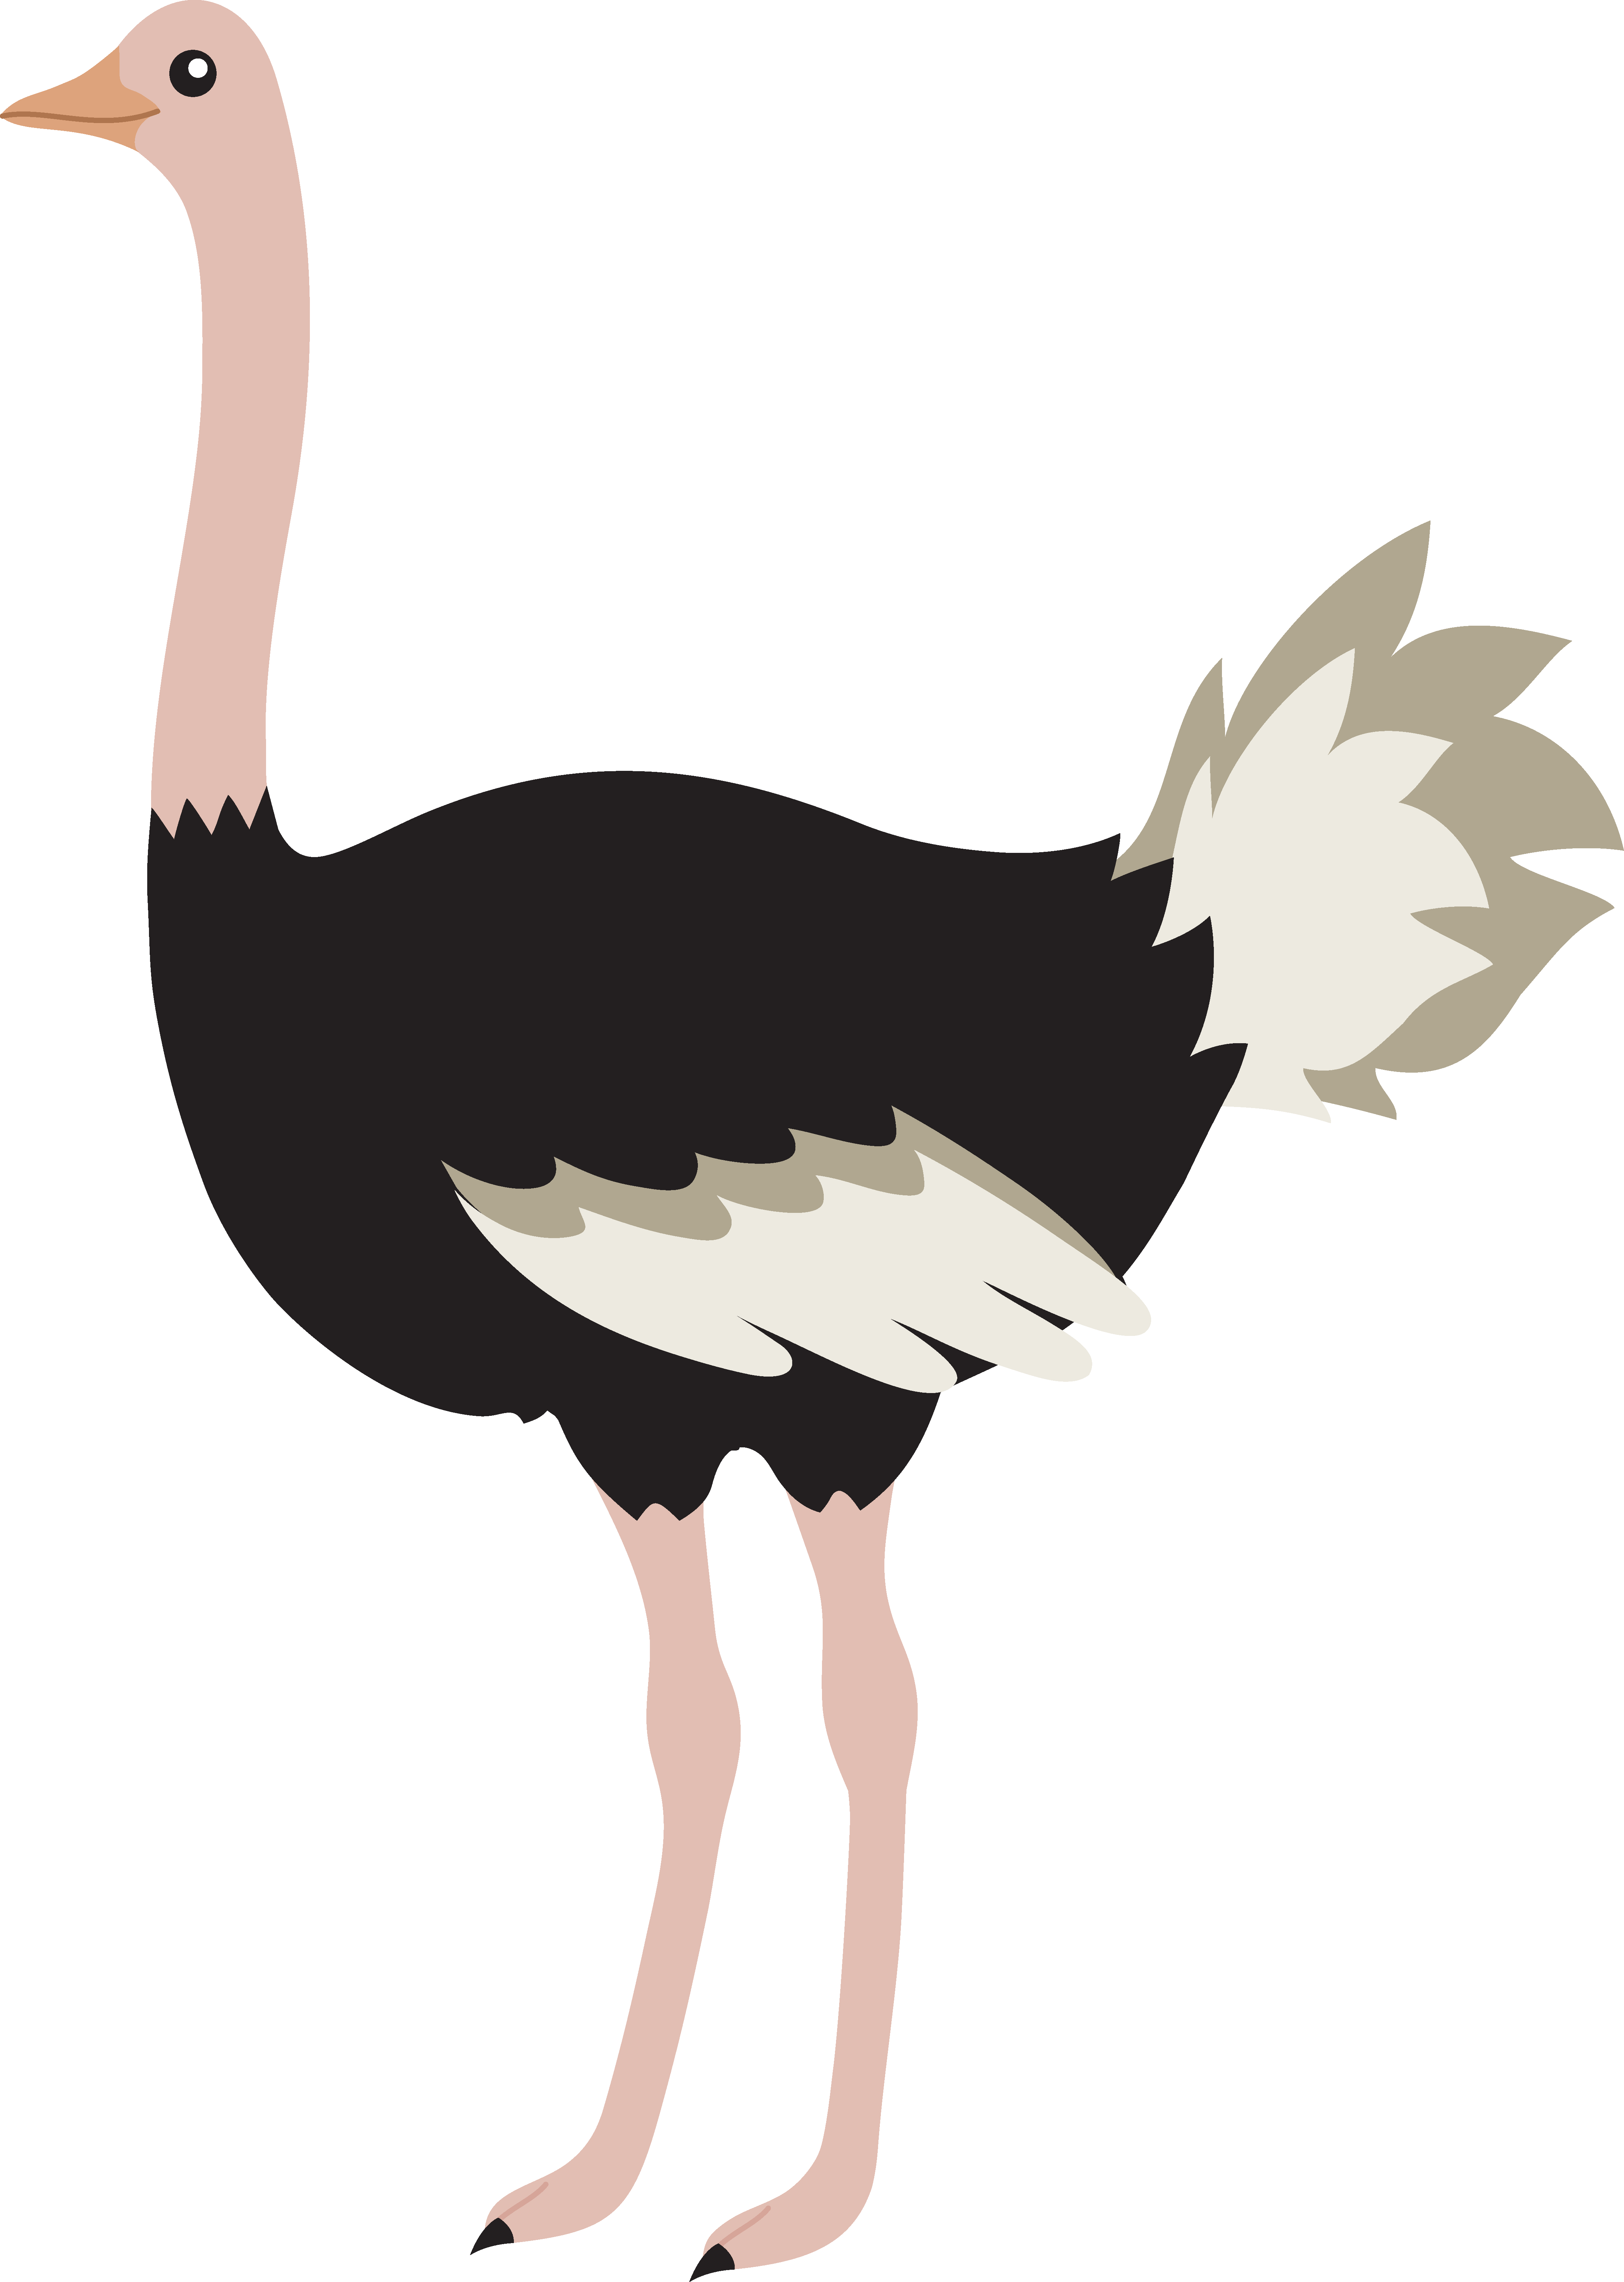 Ostrich clipart #5, Download drawings